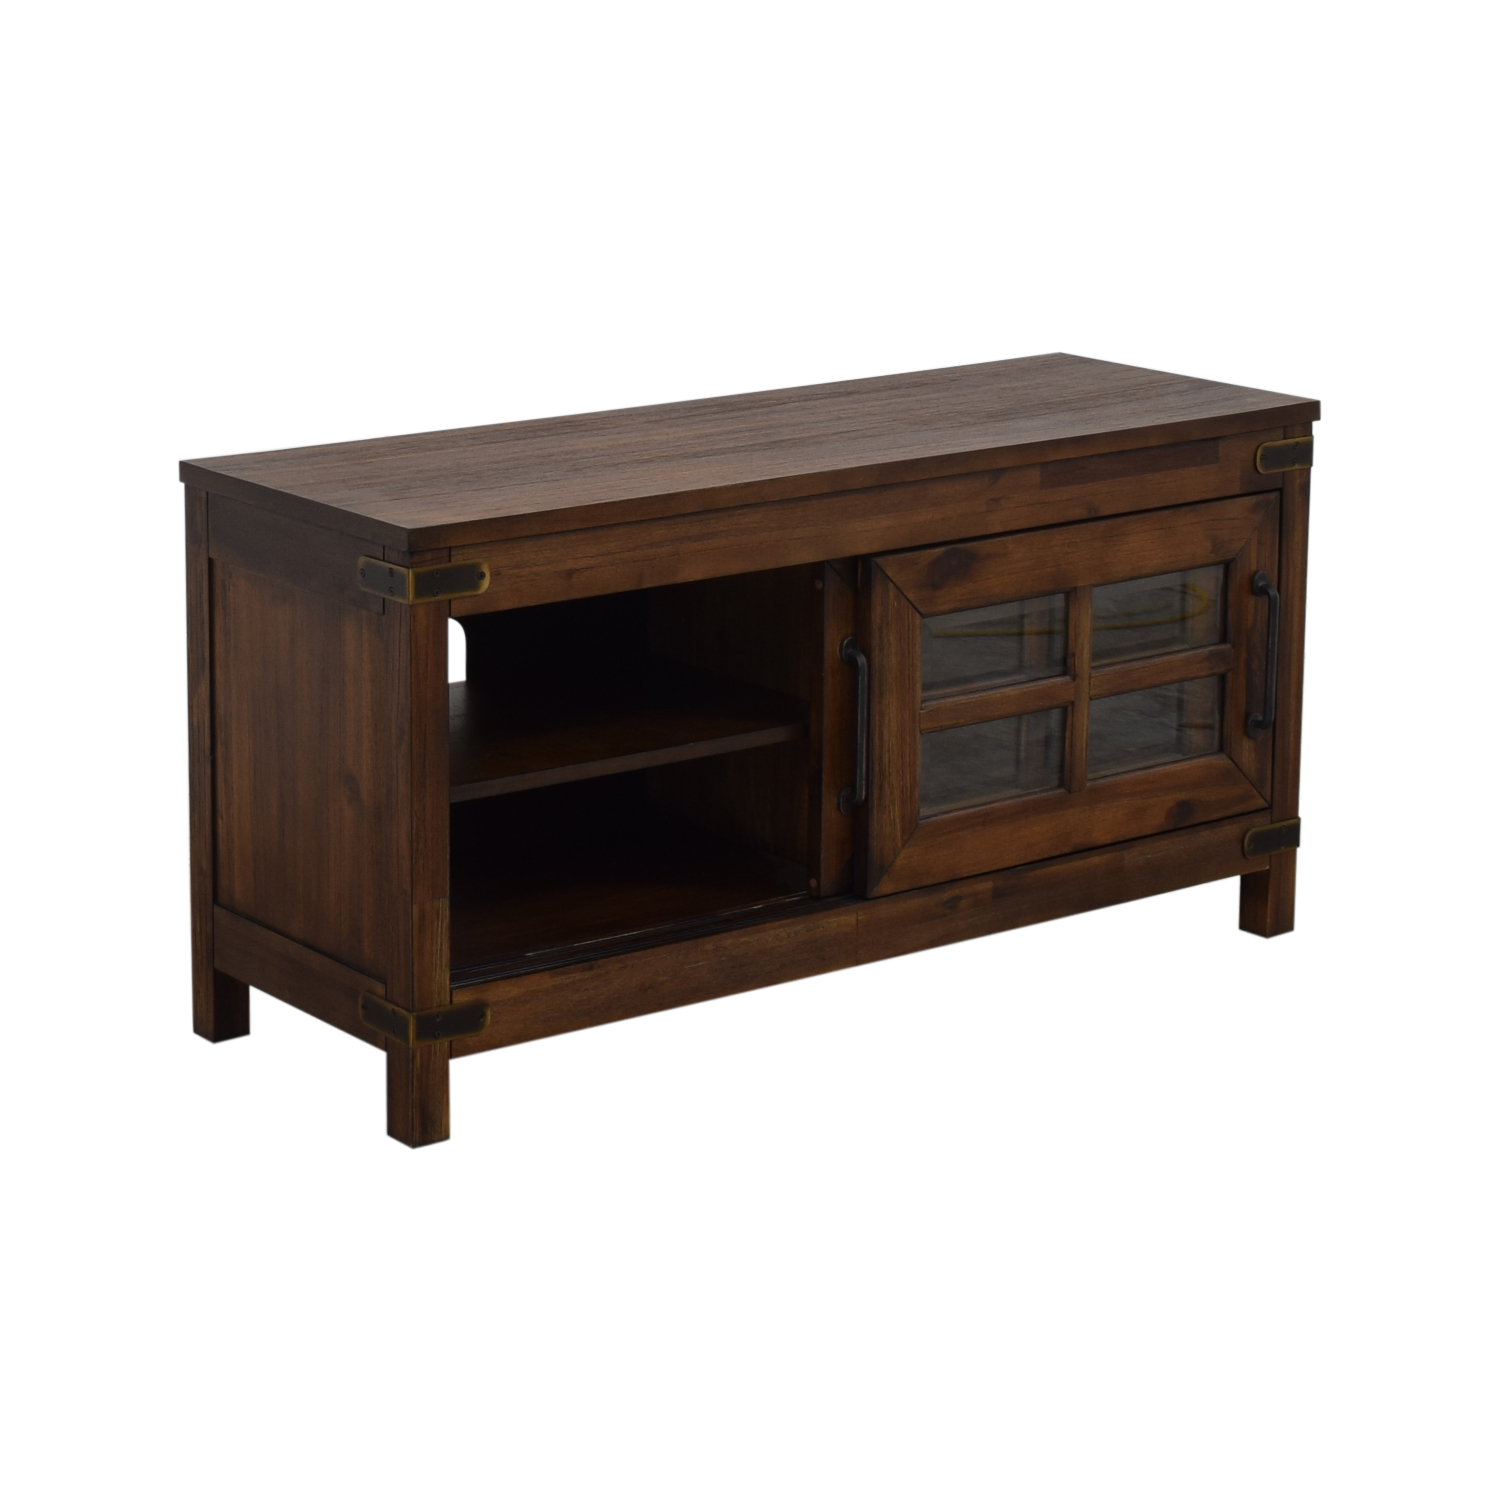 Bob's Discount Furniture Bob's Discount Furniture Boulder Entertainment Console dimensions